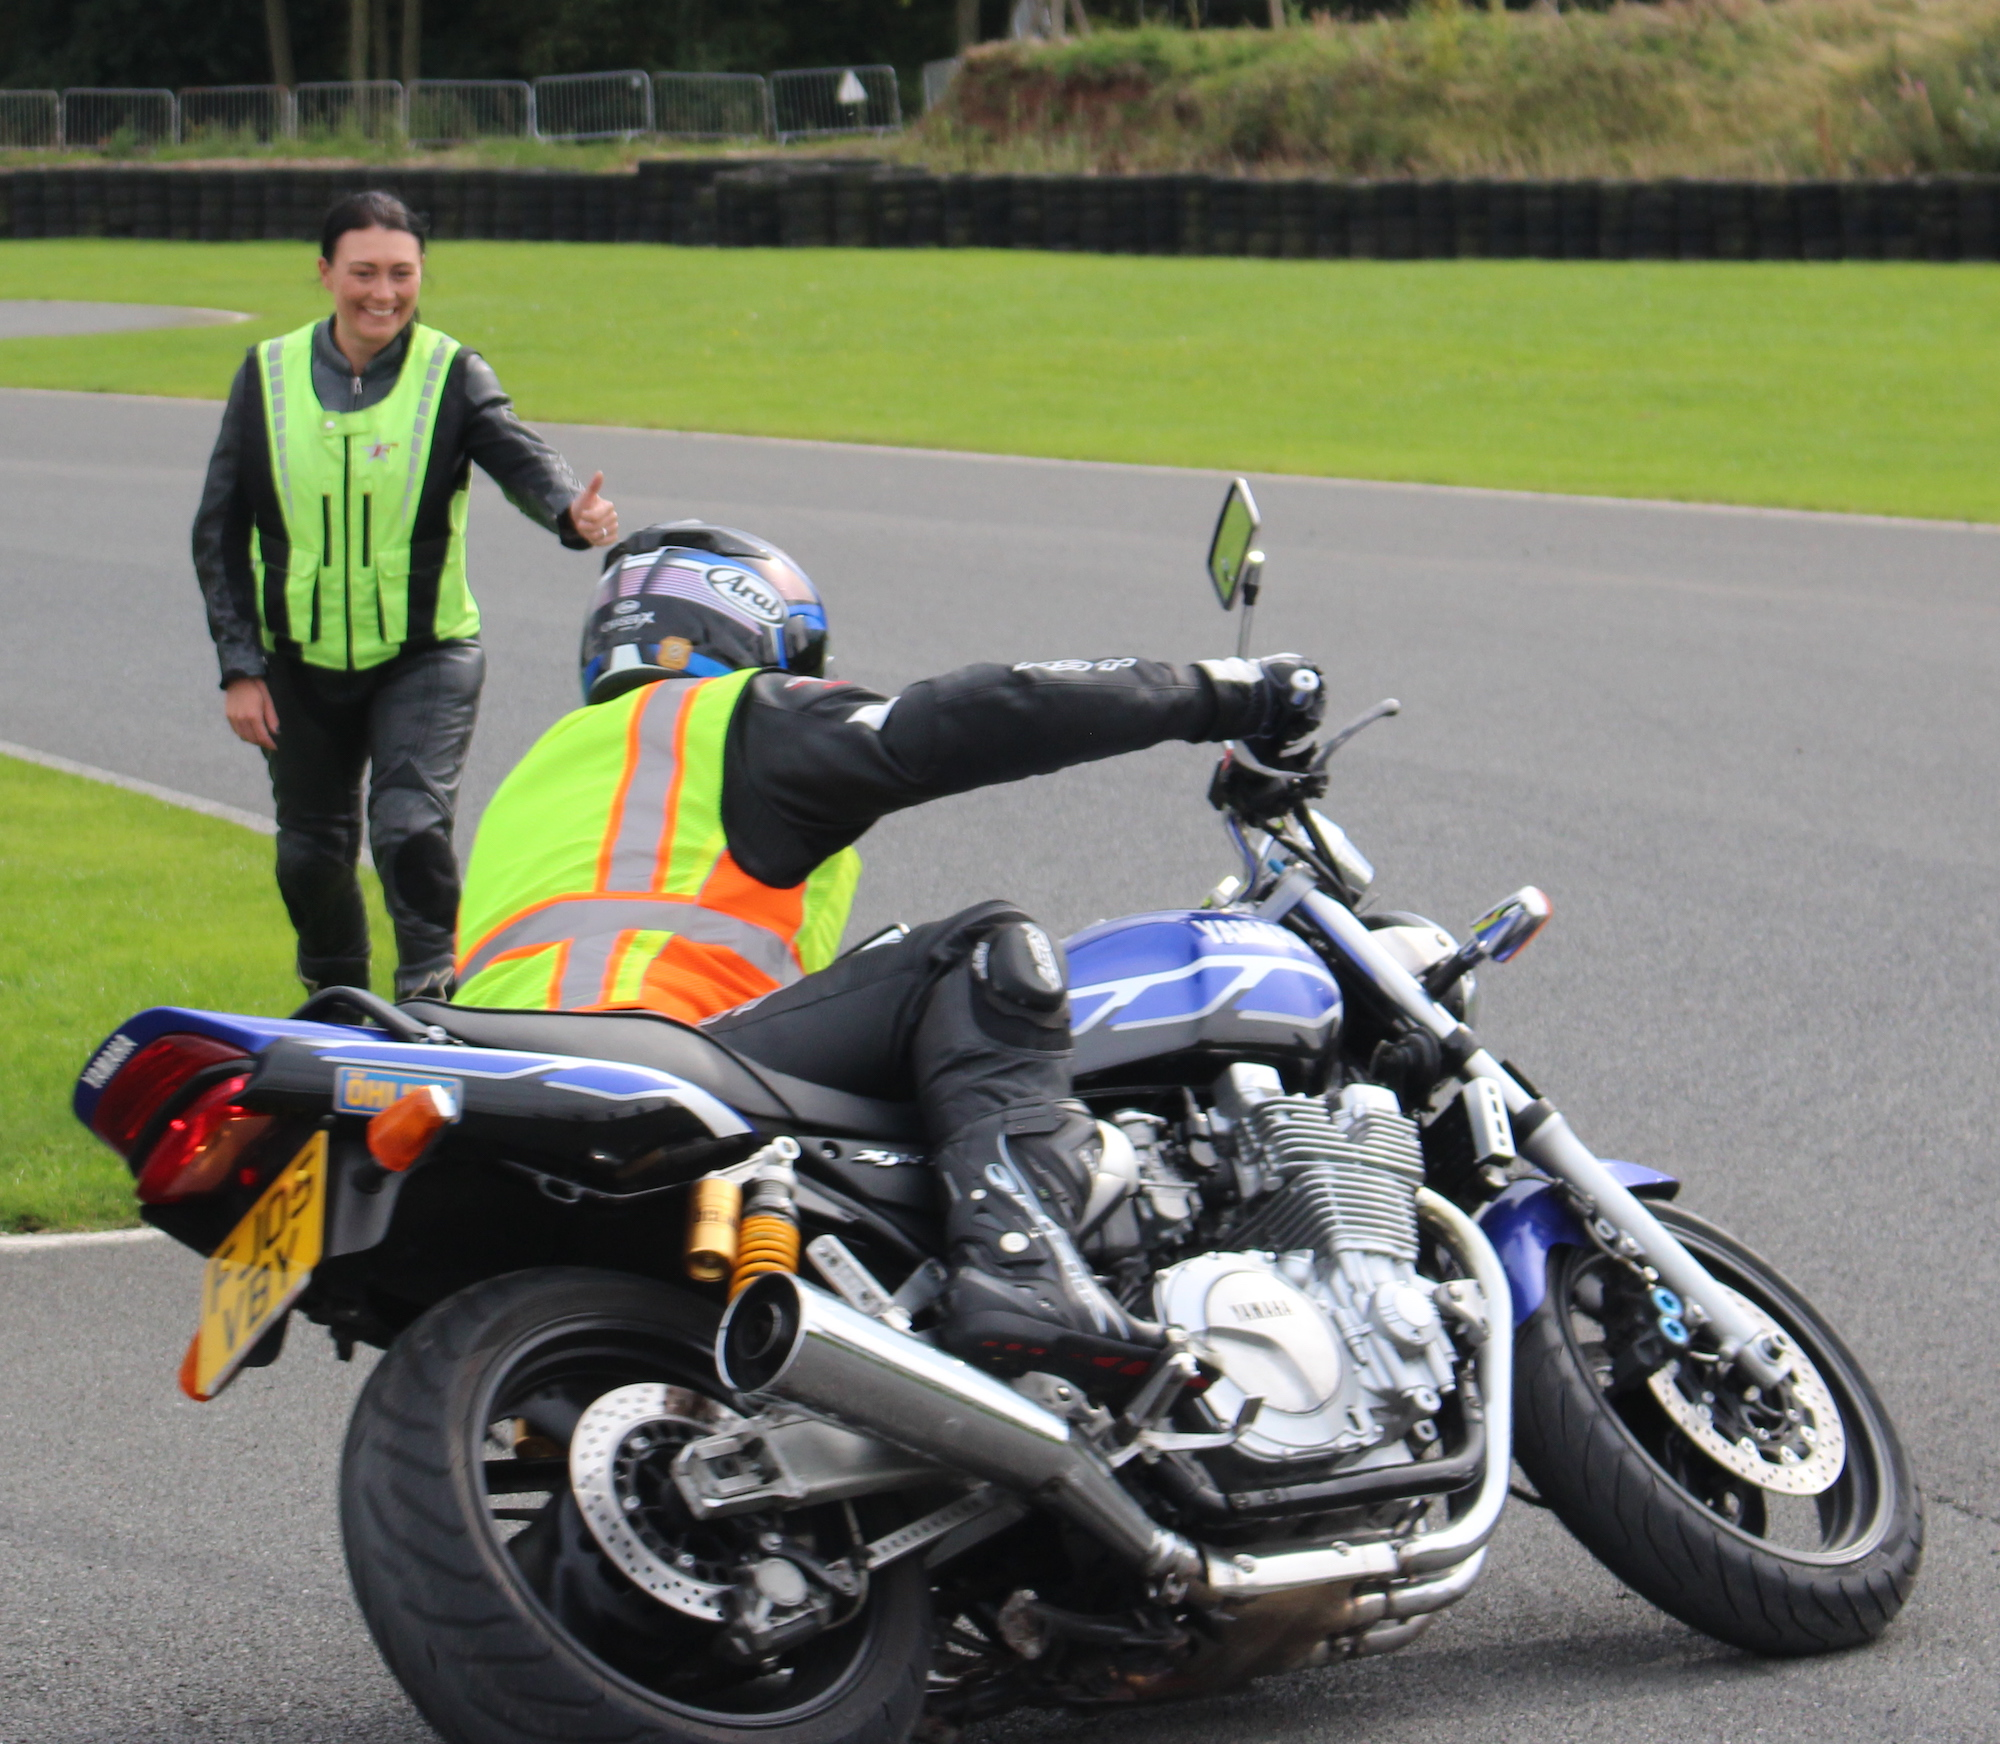 Knee down advanced motorcycle course